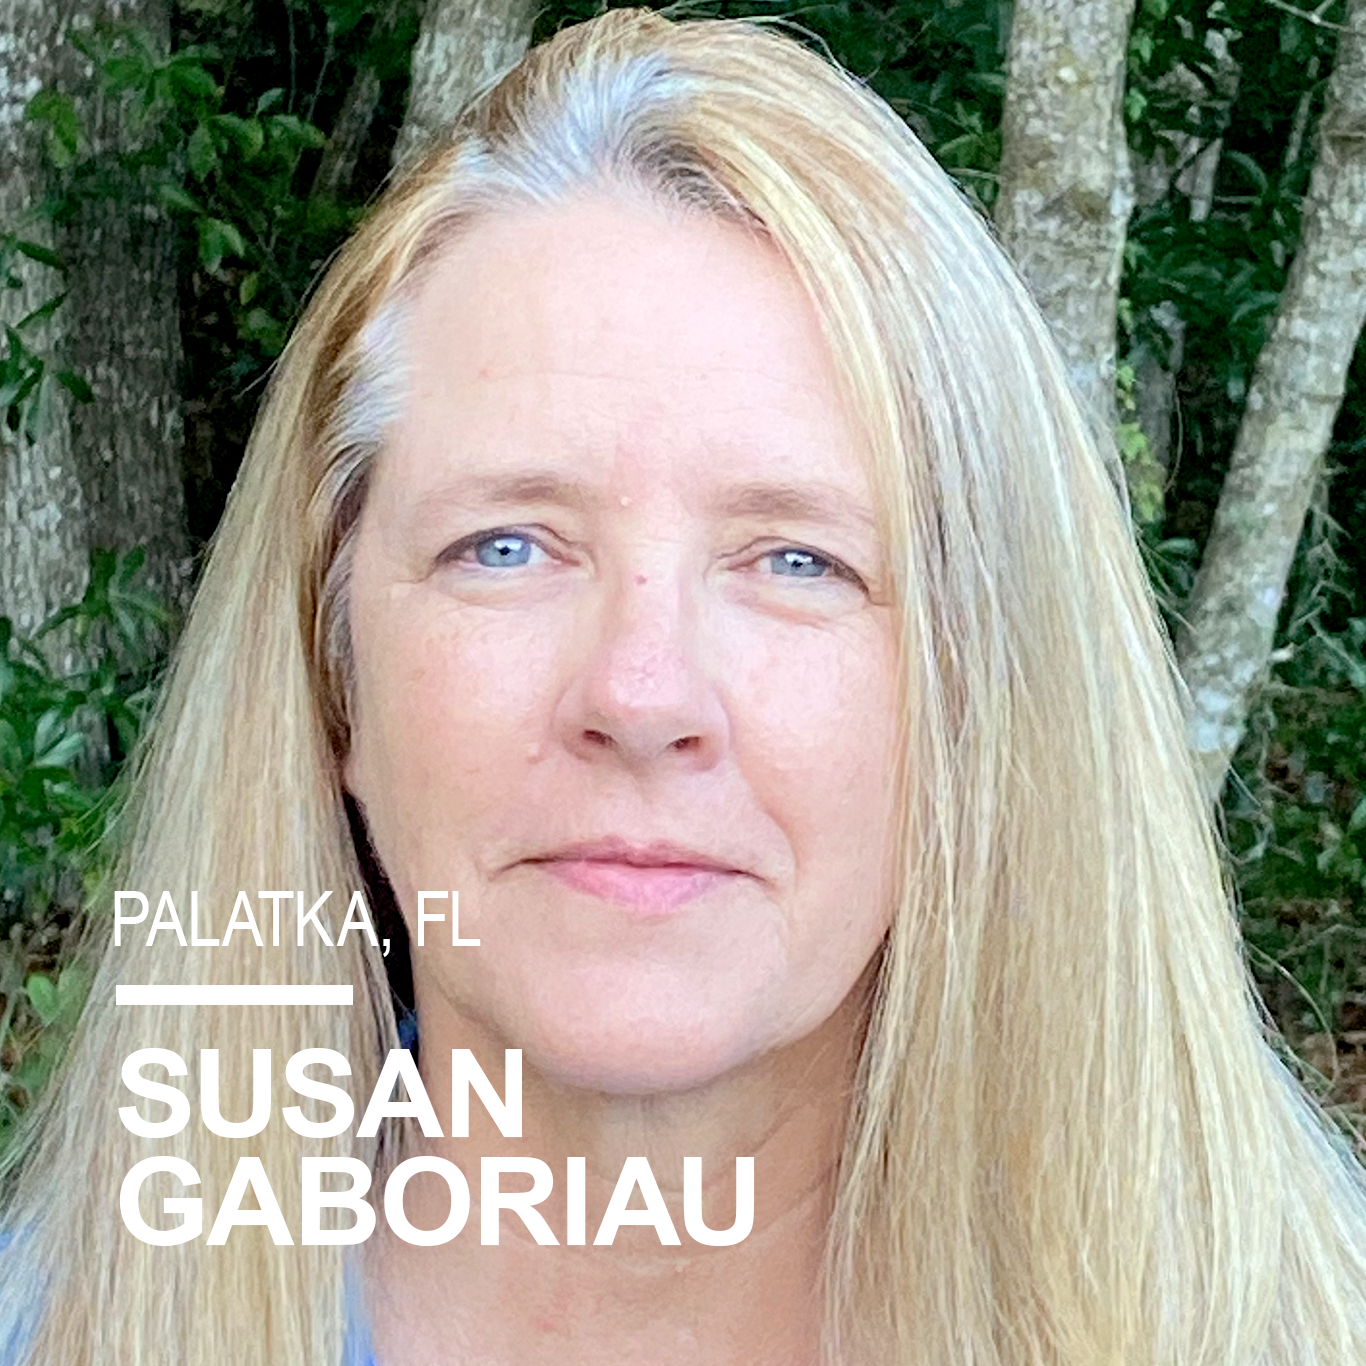 Susan Gaboriau is the district technology integration specialist for the Putnam County School District in Palatka, FL. She heads up the FIRST® LEGO® League (FLL®), FLL Jr. robotics teams, and the Dash n' Dot robotics clubs for Putnam County, FL. Susan is passionate about STEAM, actively engaging students in hands-on experiences, and helping teachers properly integrate technology so that it enhances hands-on learning. In 2017, she introduced robotics in the district with one Dash n' Dot club. The district now has 20 FLL, three FLL Jr., and three Dash n' Dot clubs.